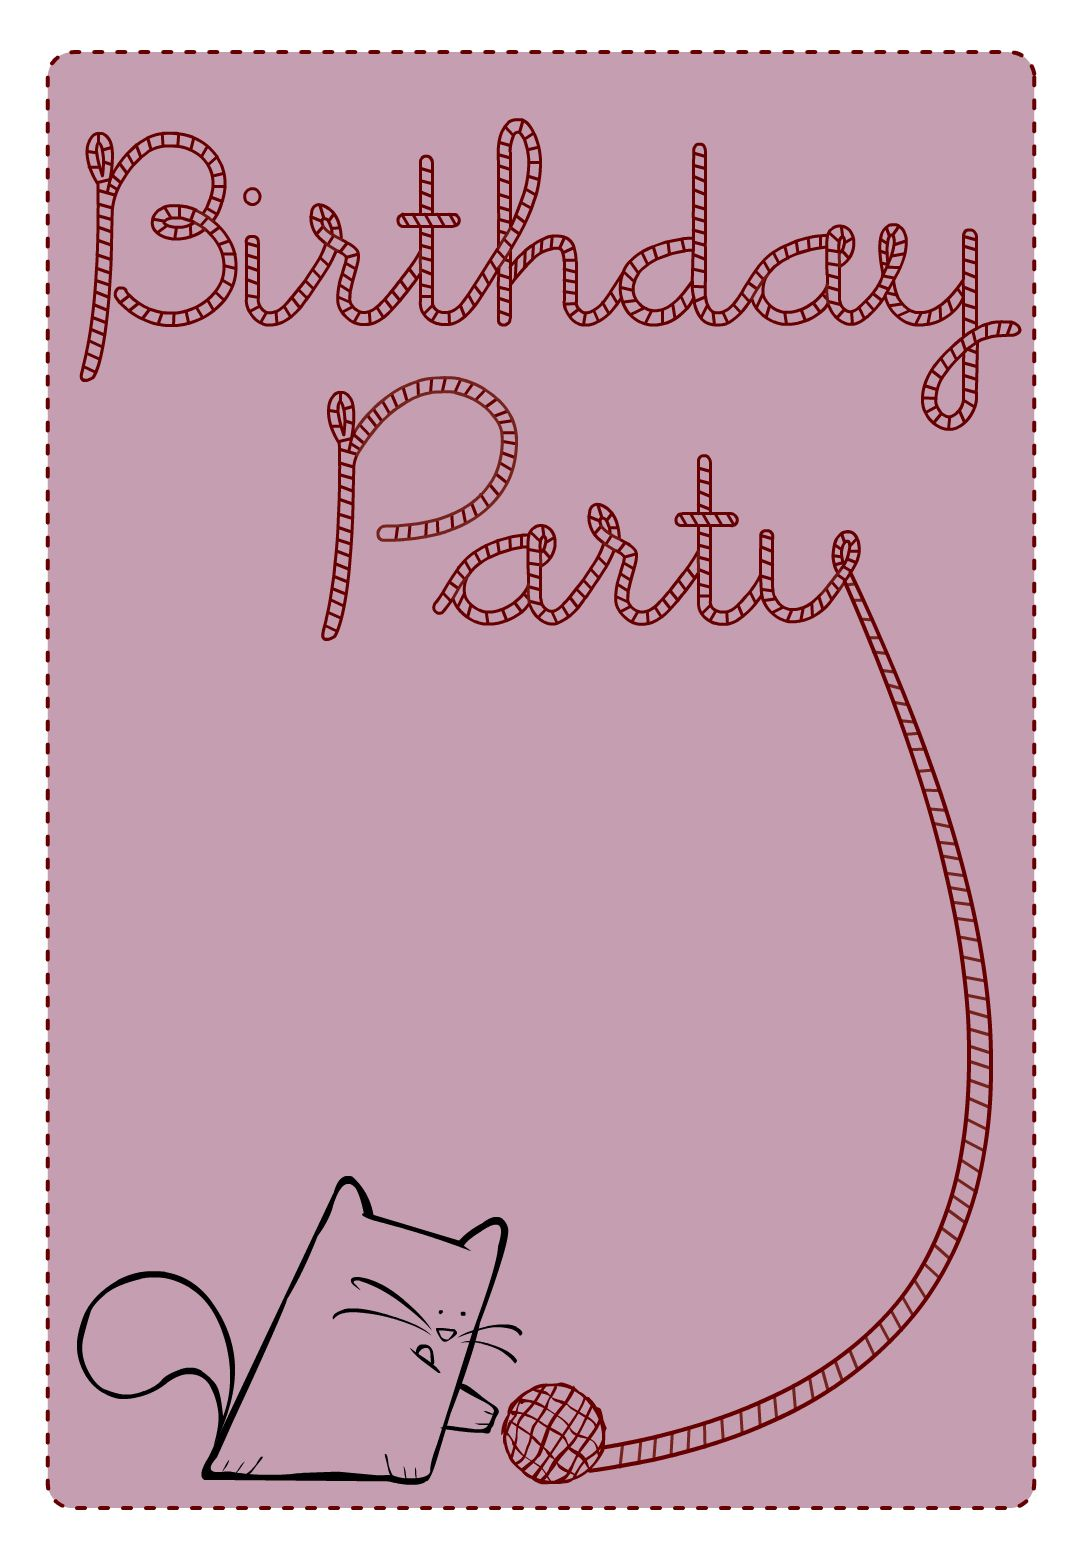 Birthday Party Cat Free Printable Birthday Invitation Template Greetings Isla Party Invite Template Cat Birthday Party Invitations Cat Birthday Invitations